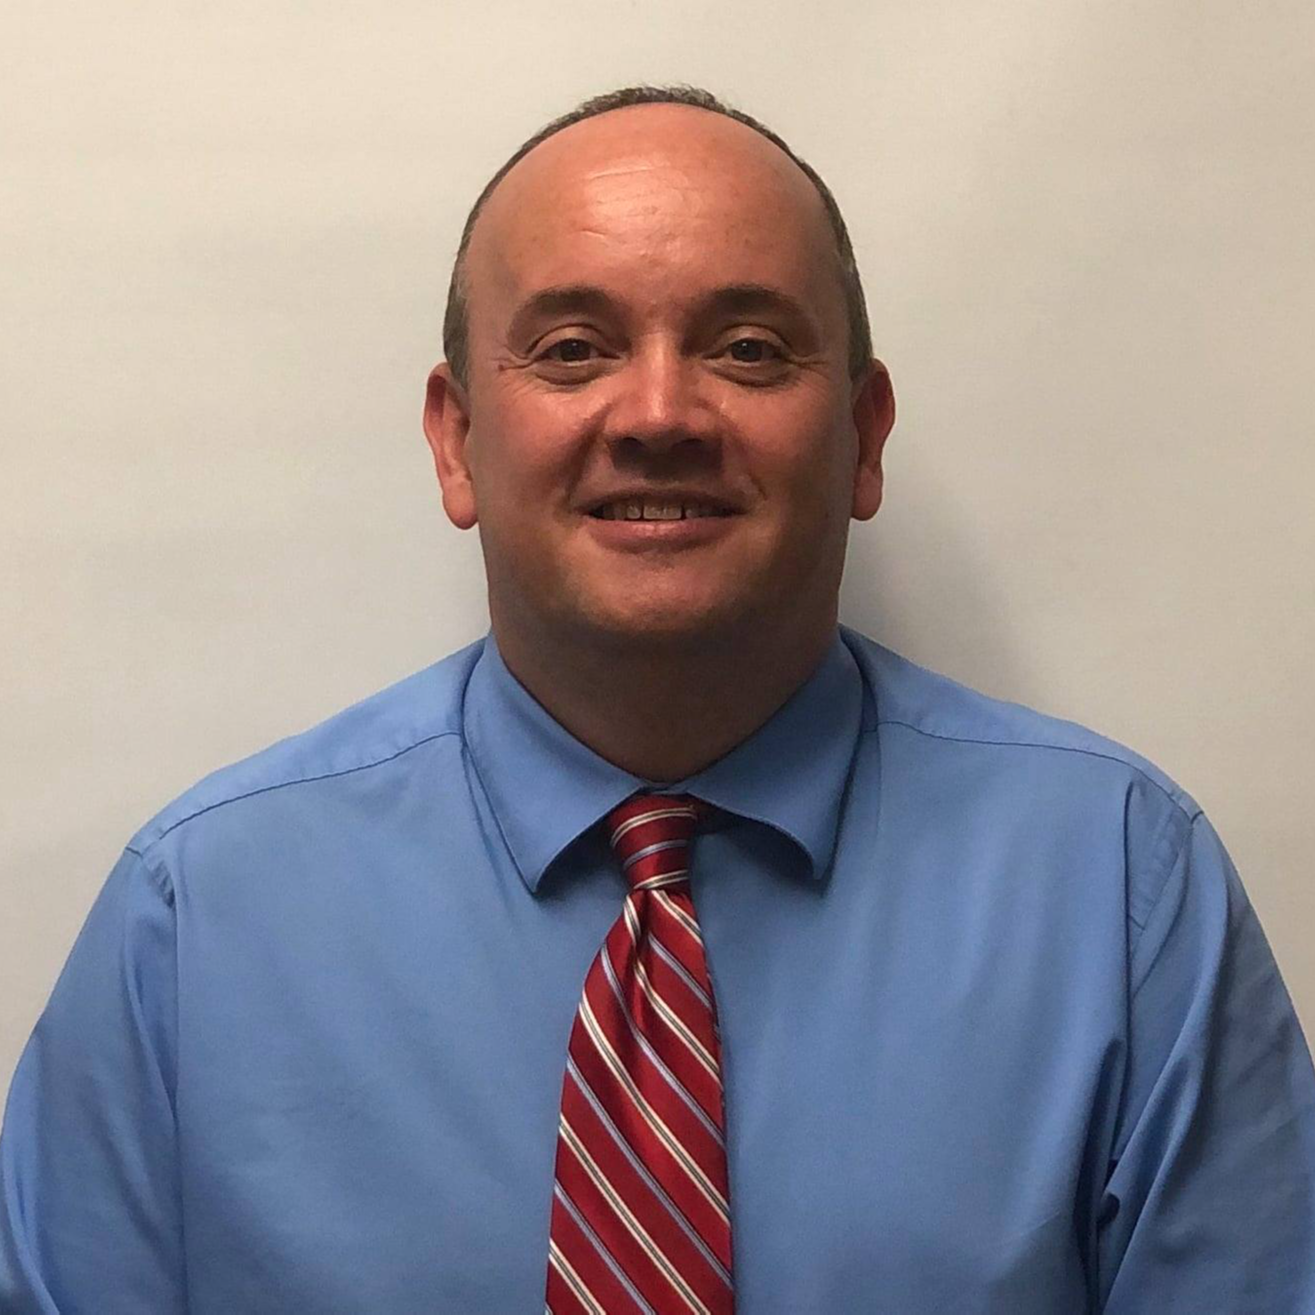 Brian has taught for 27 years. This year he has accepted a position at the district level in the role of Instructional Supervisor and Digital Learning Coach.